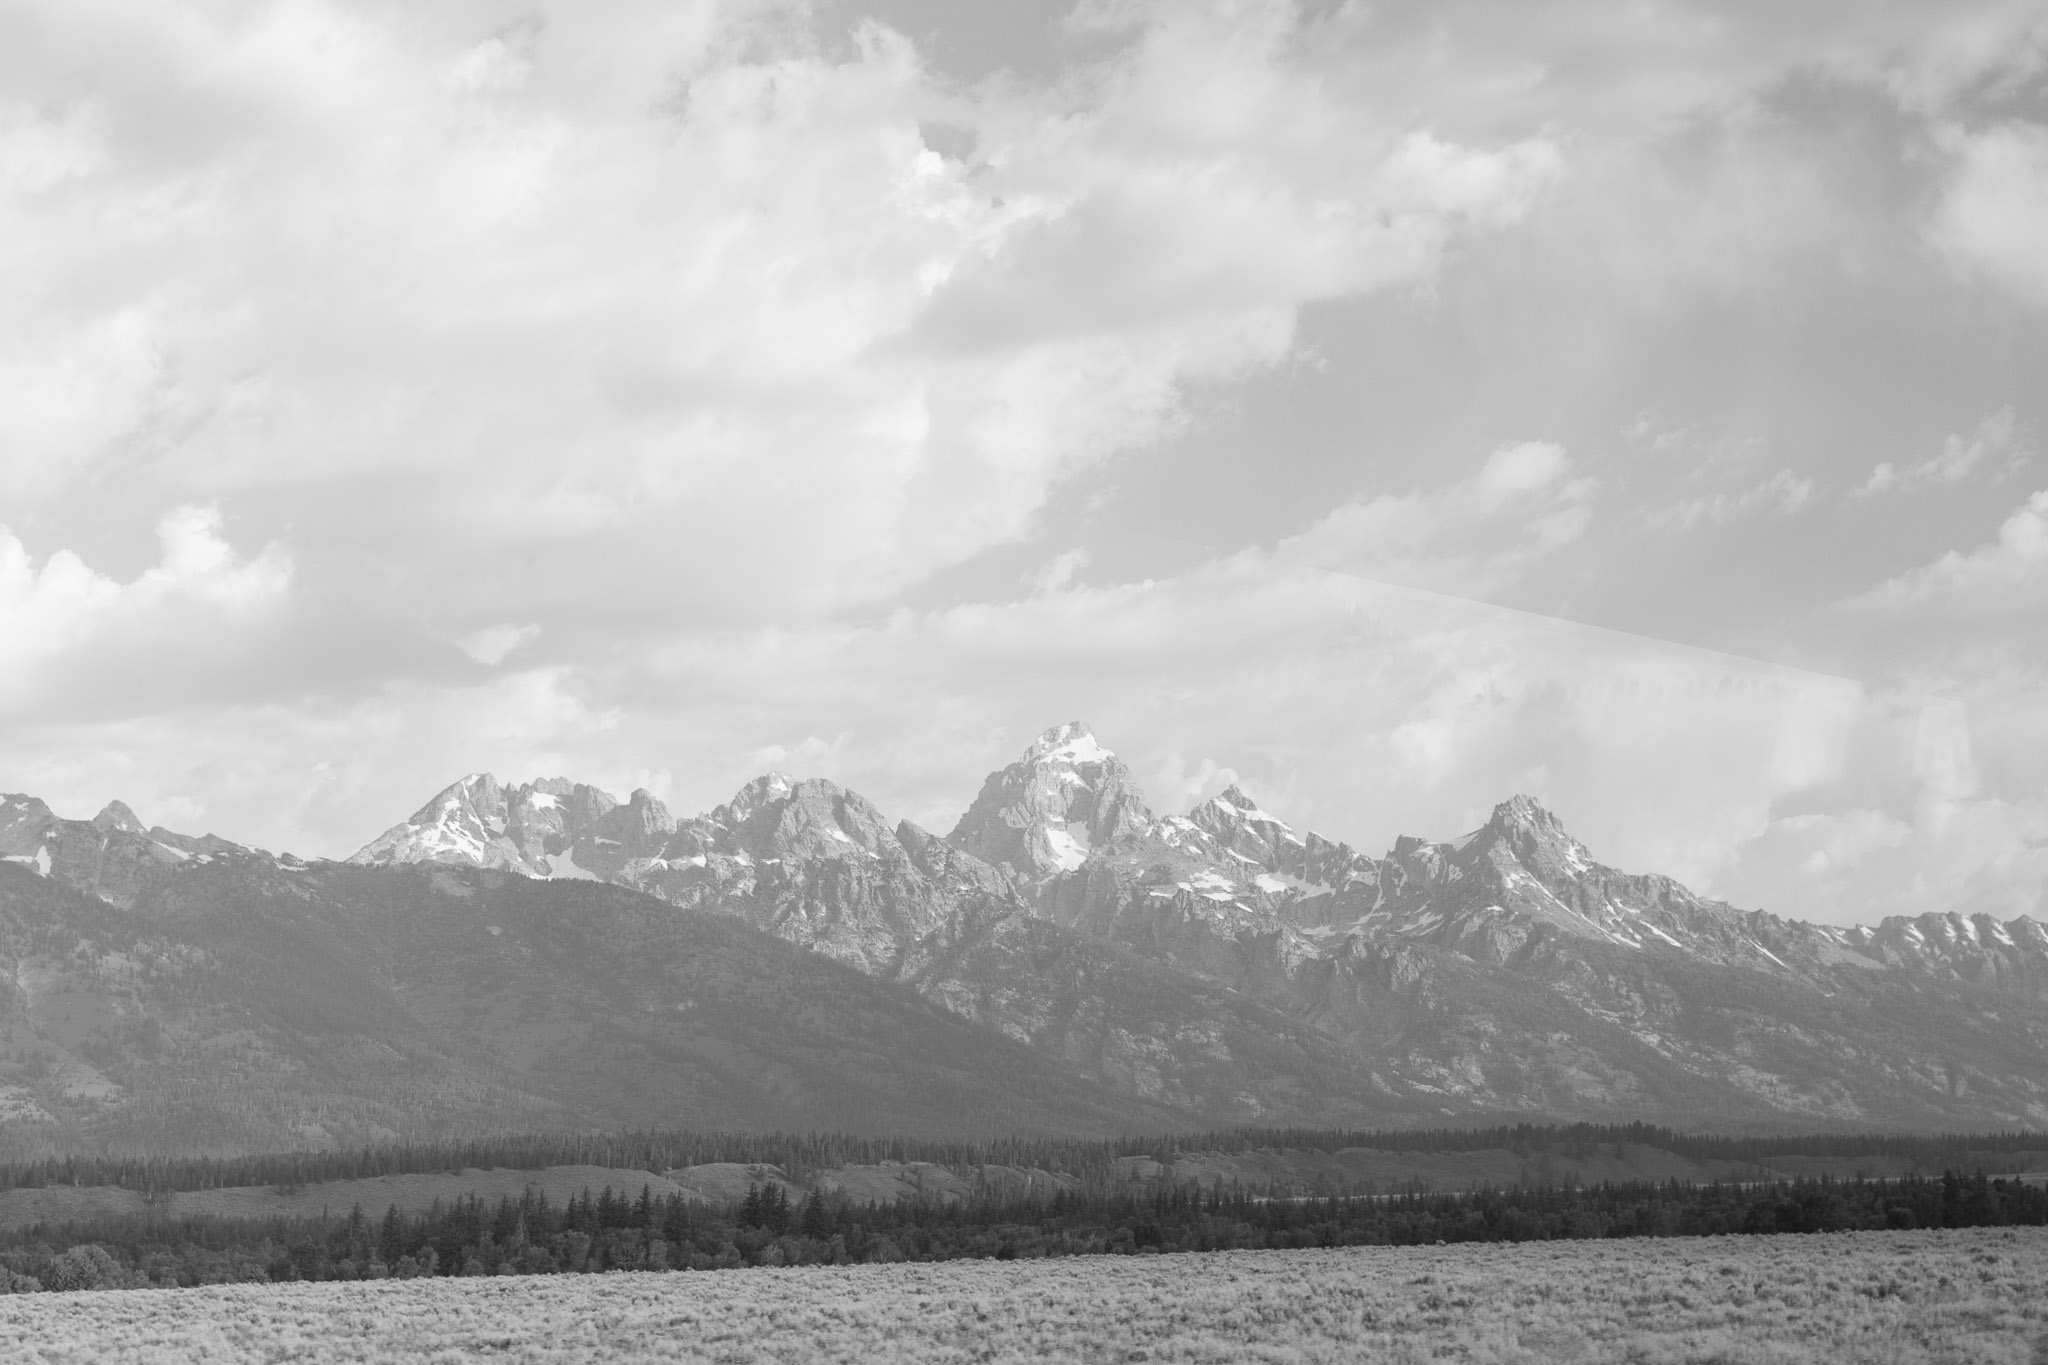 An unprocessed black and white photograph of the Grand Teton Mountains; this was the frame taken just moments before the one turned into 6000 Feet.